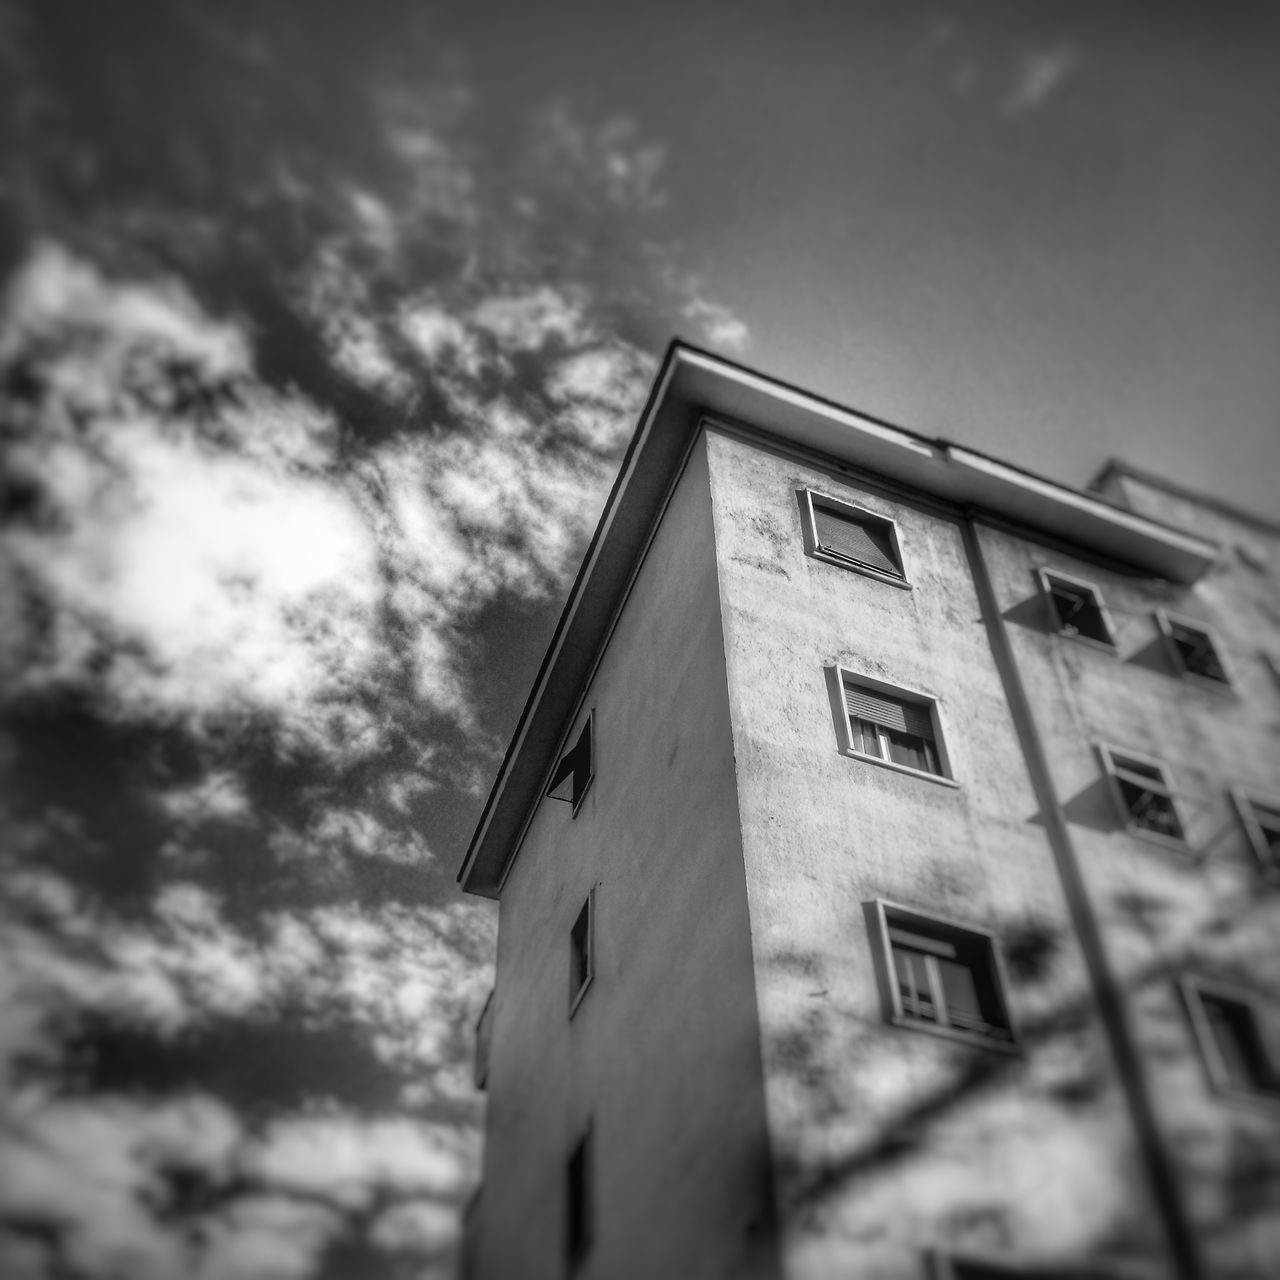 Cloud - Sky Low Angle View Sky Built Structure No People Day Architecture Building Exterior Outdoors Tilt Shift Blackandwhite Blackandwhite Photography Black & White Black And White